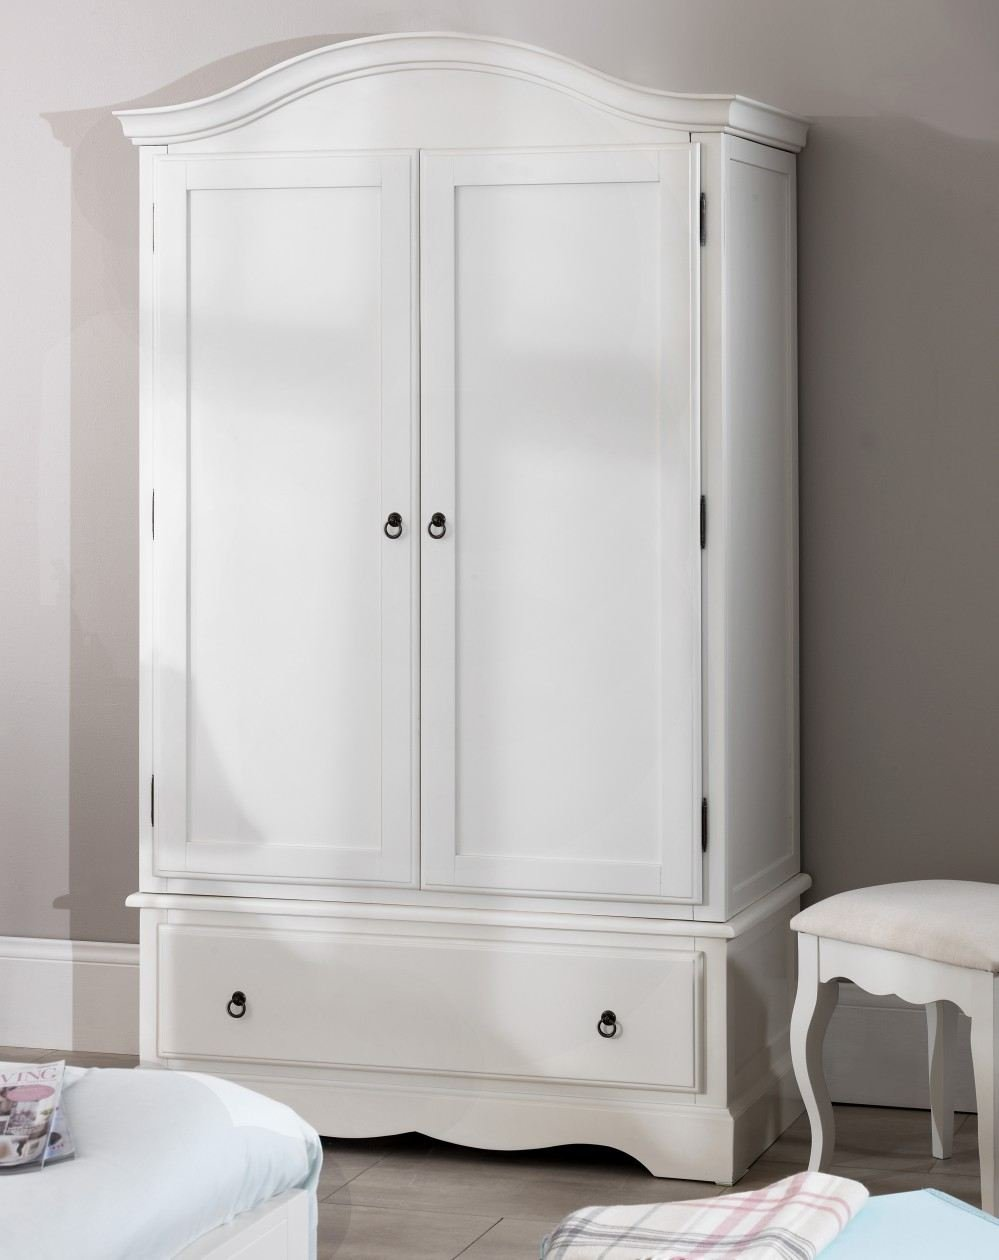 romance double wardrobe stunning french antique white wardrobe with large drawer antique white amazoncouk kitchen home - White Wardrobe